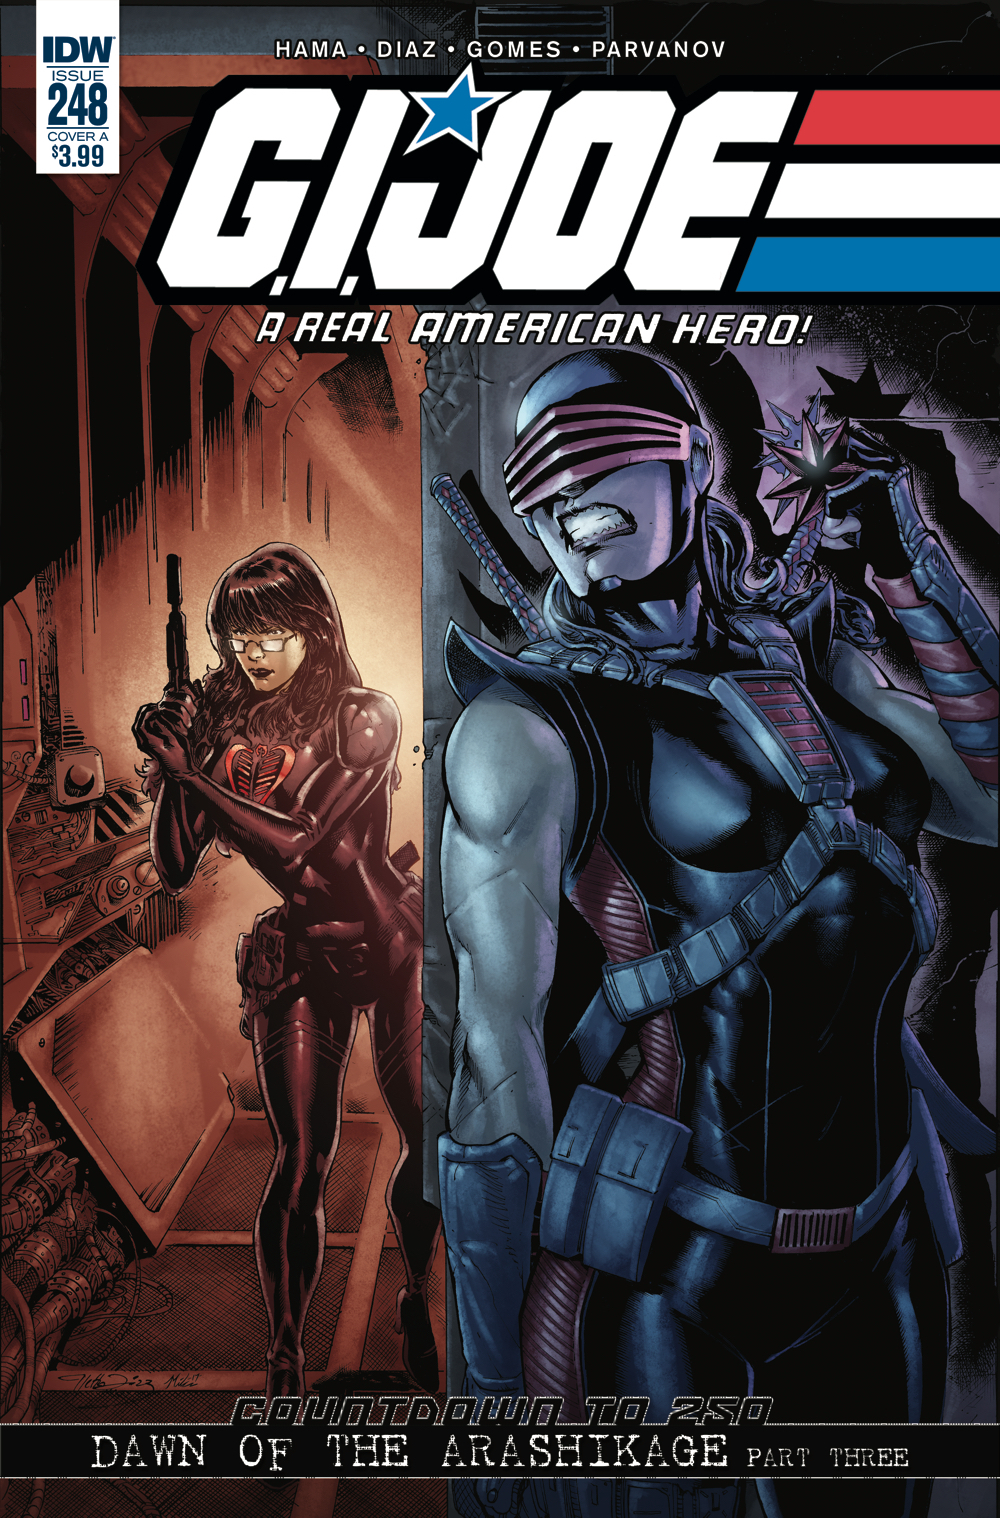 GI JOE A REAL AMERICAN HERO #248 CVR A DIAZ